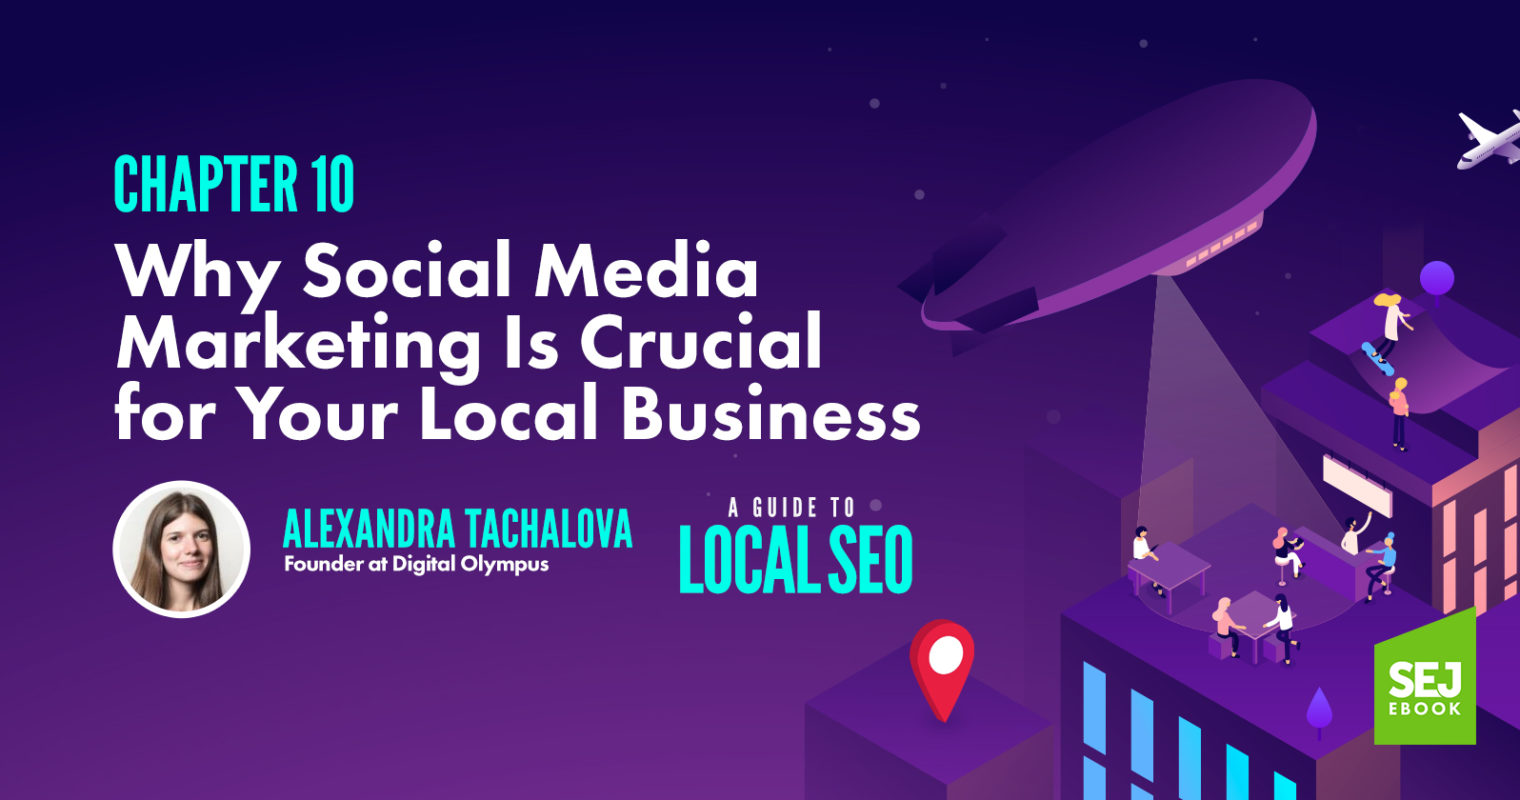 Why Social Media Marketing Is Crucial for Your Local Business